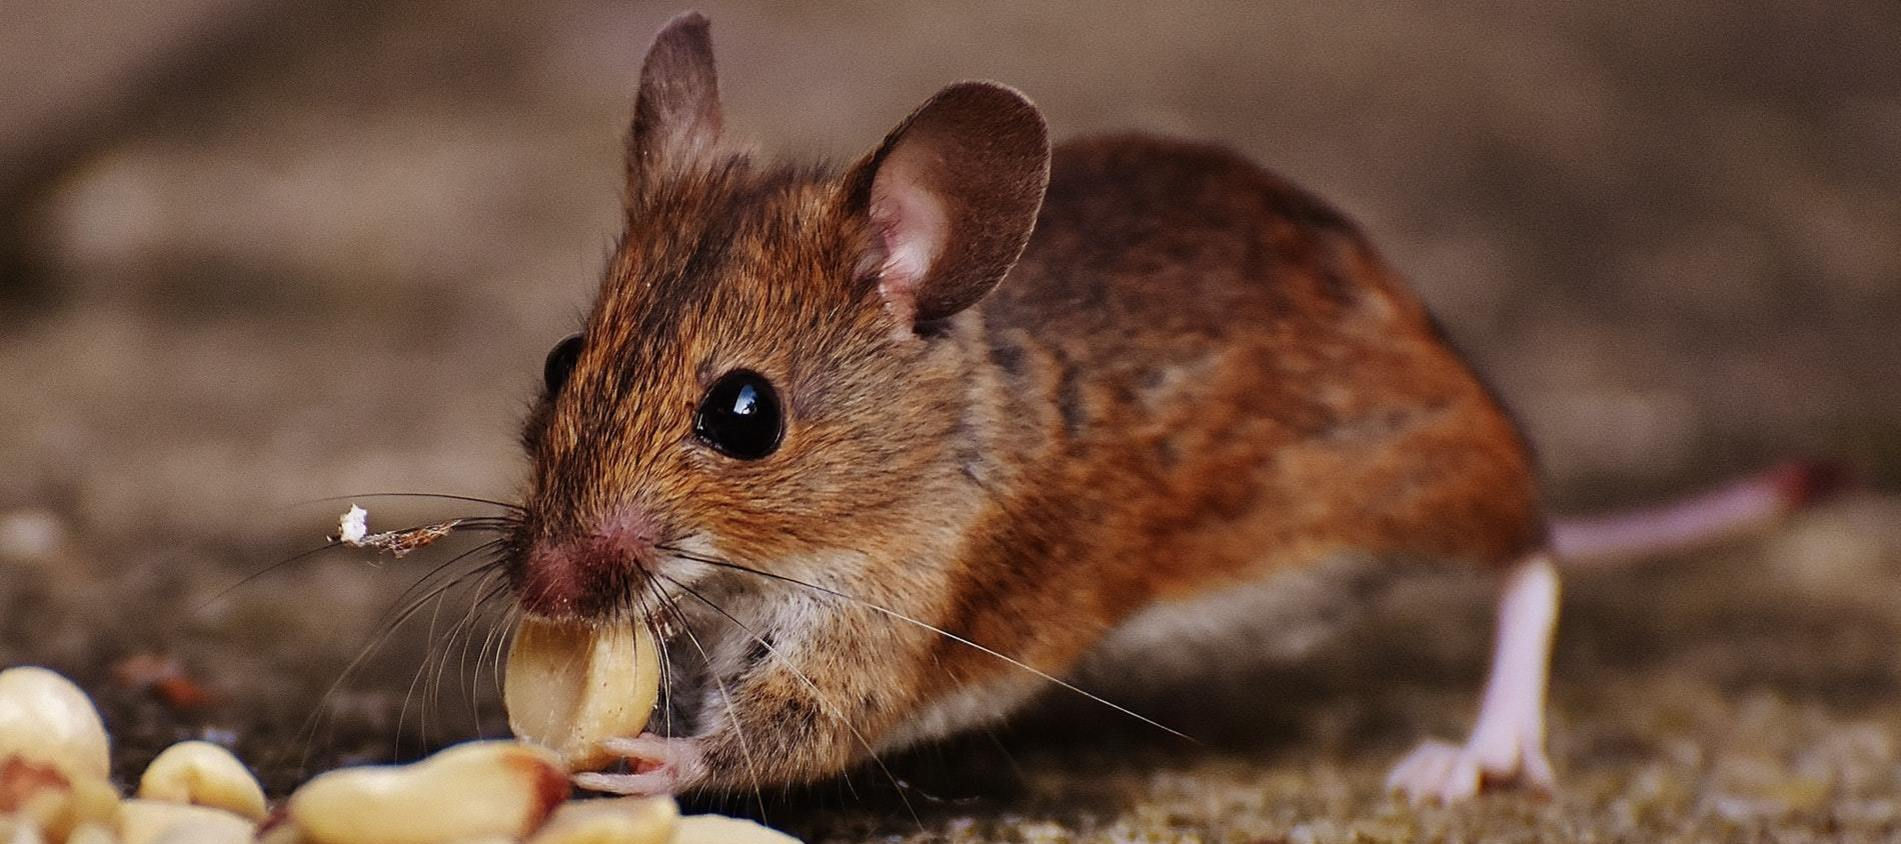 Mouse eating seeds